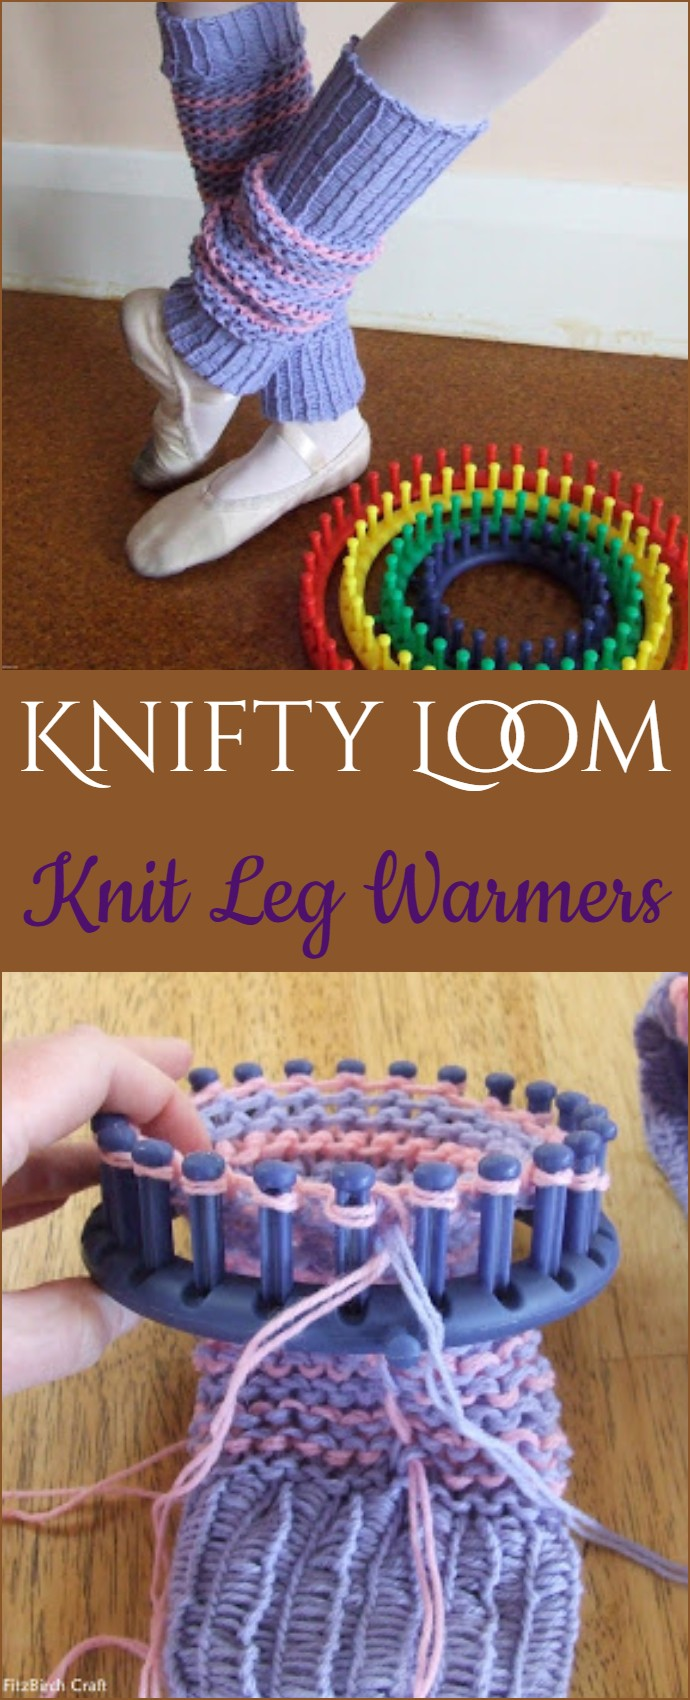 Knifty Loom Knit Leg Warmers